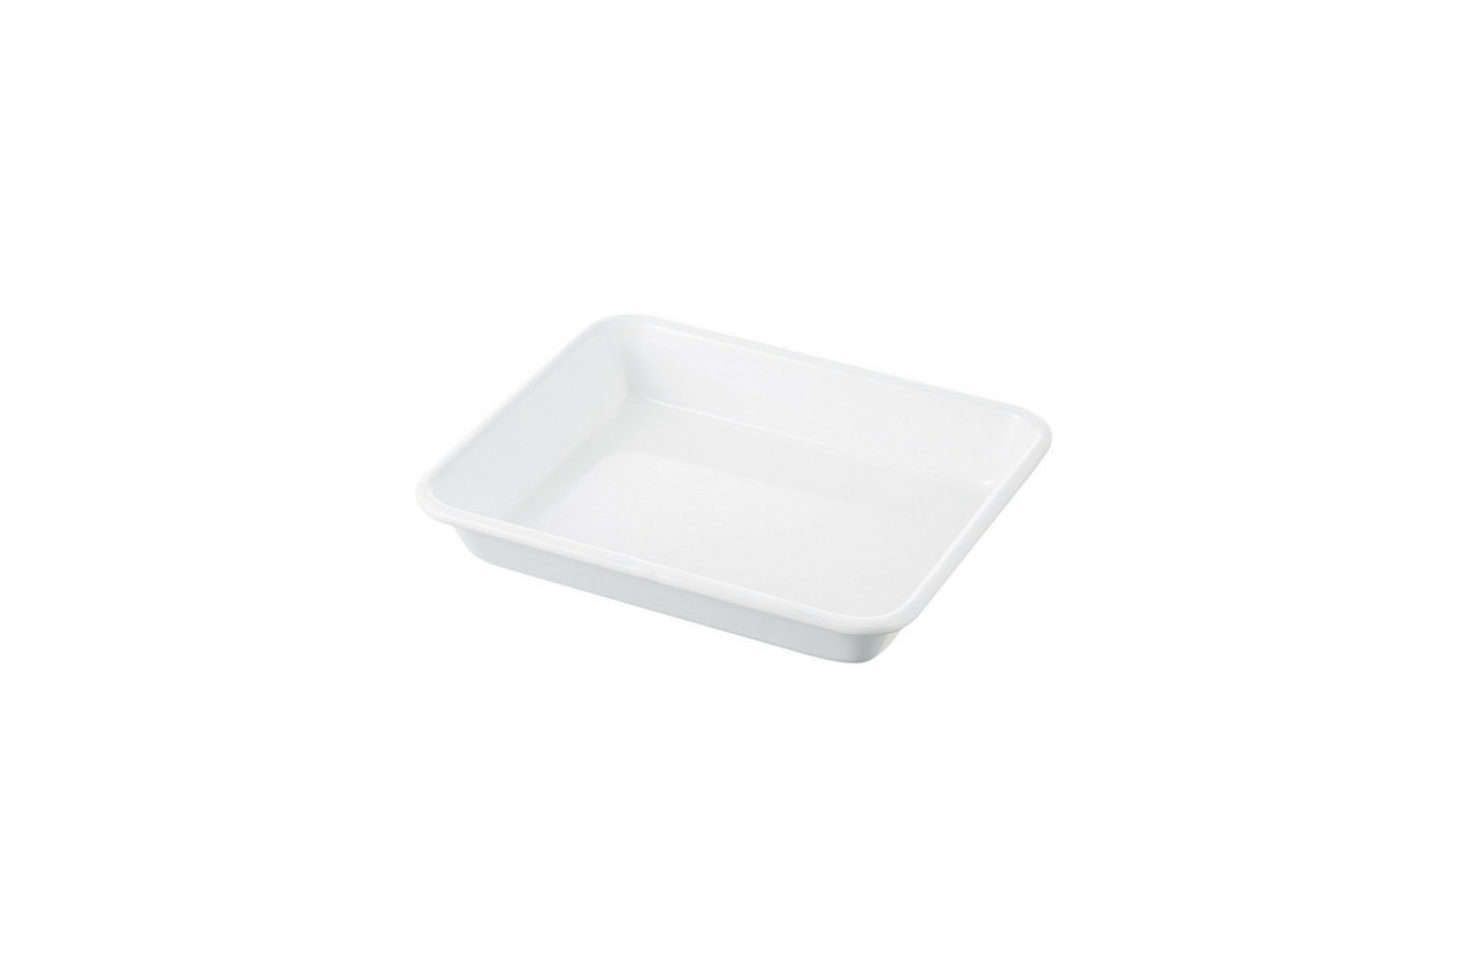 The white enamel trays featured in our bookThe Organized Homeare by Japanese company Noda Horo. We sourced them from Dover Street Market in New York City but you can also find them on Amazon, including the Noda Enamel Rectangle Deep Medium Tray for $3src=